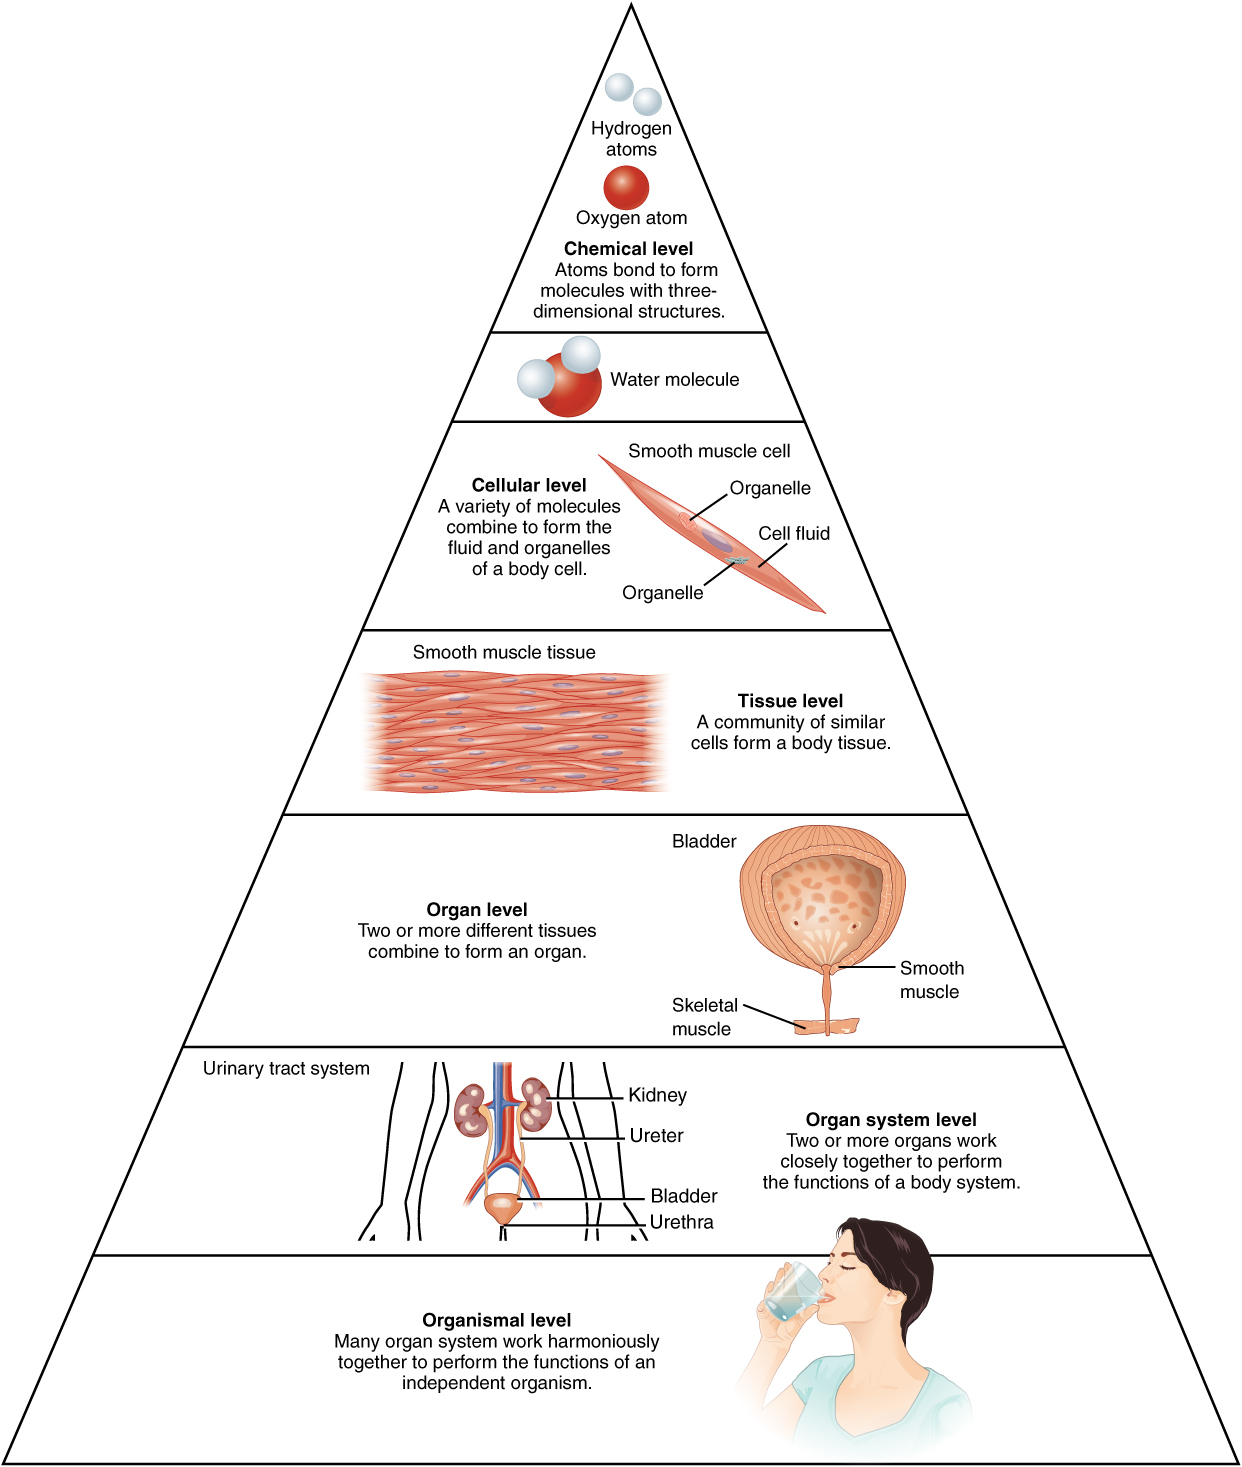 Structural Organization Of The Human Body